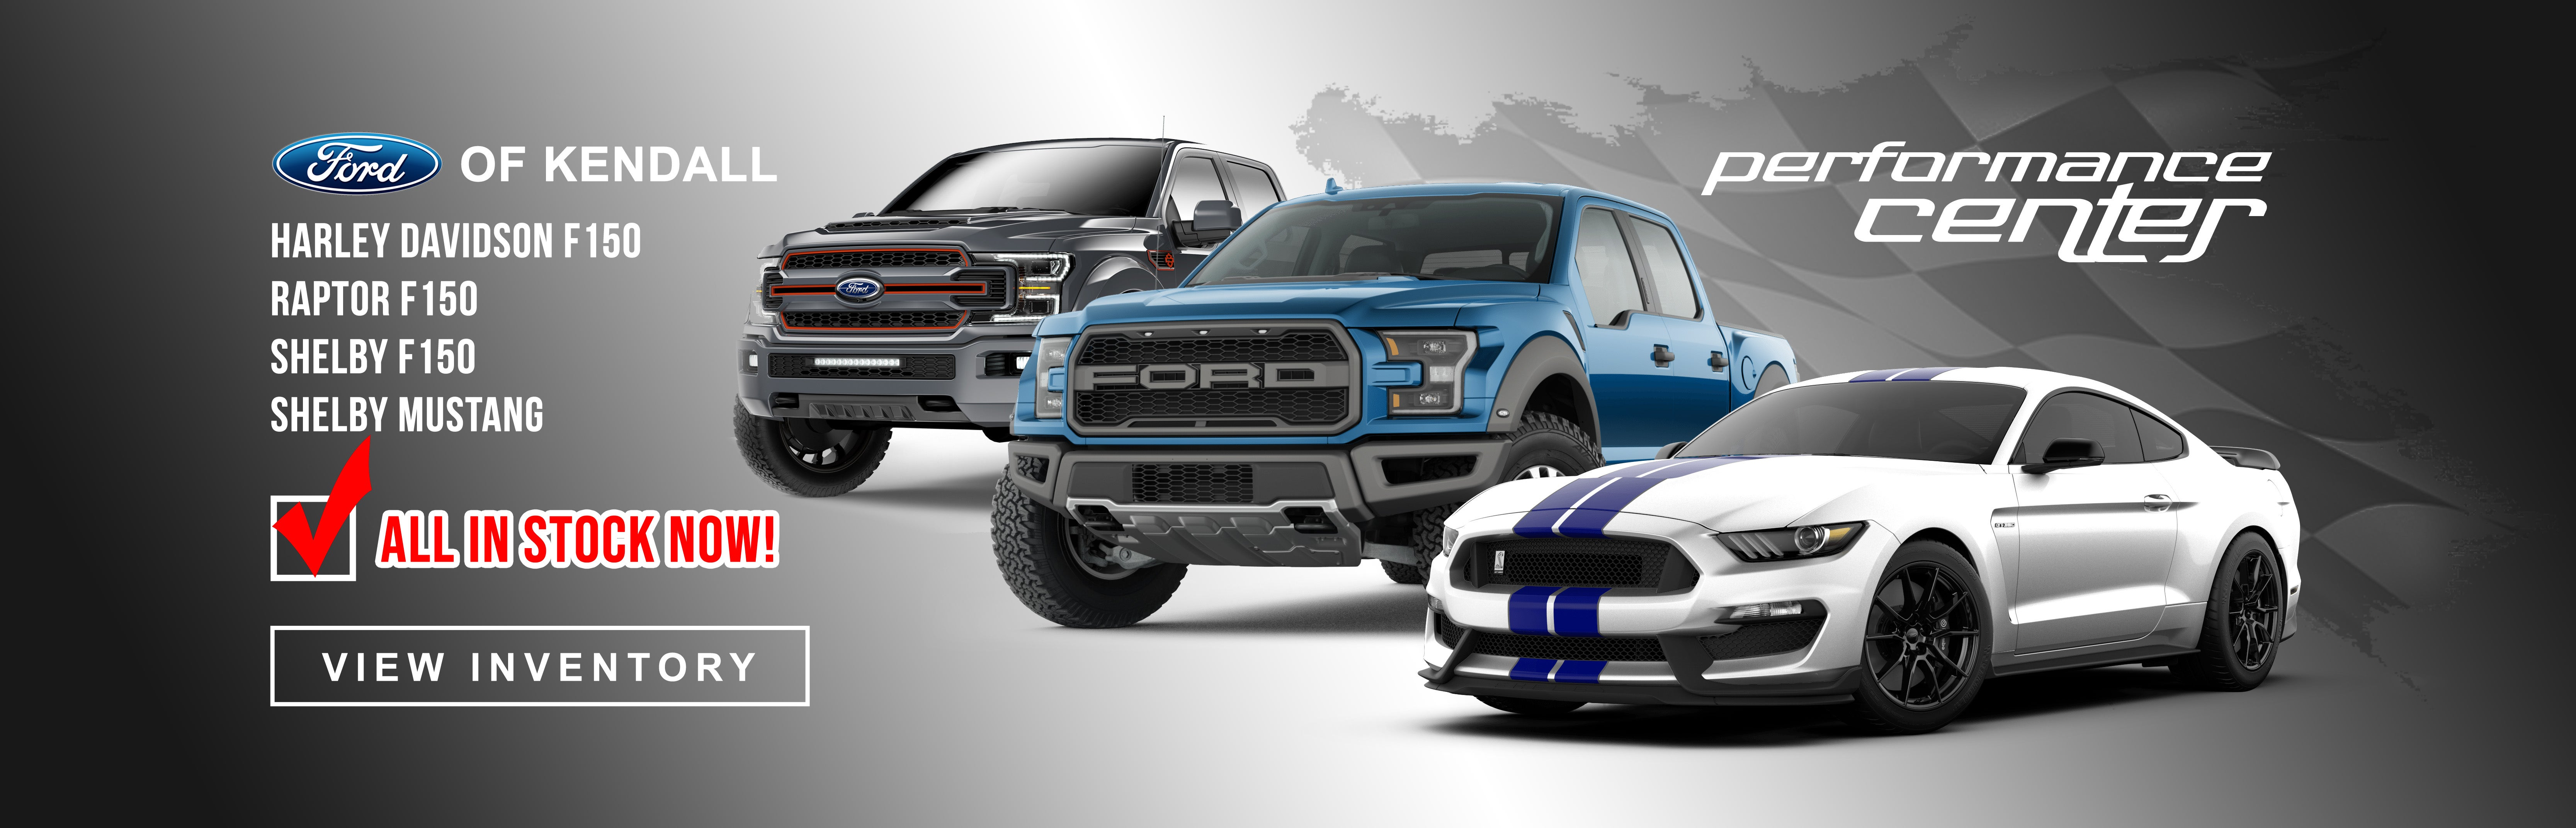 Truck Performance Shops Near Me >> Ford Dealer In Miami Fl Used Cars Miami Ford Of Kendall